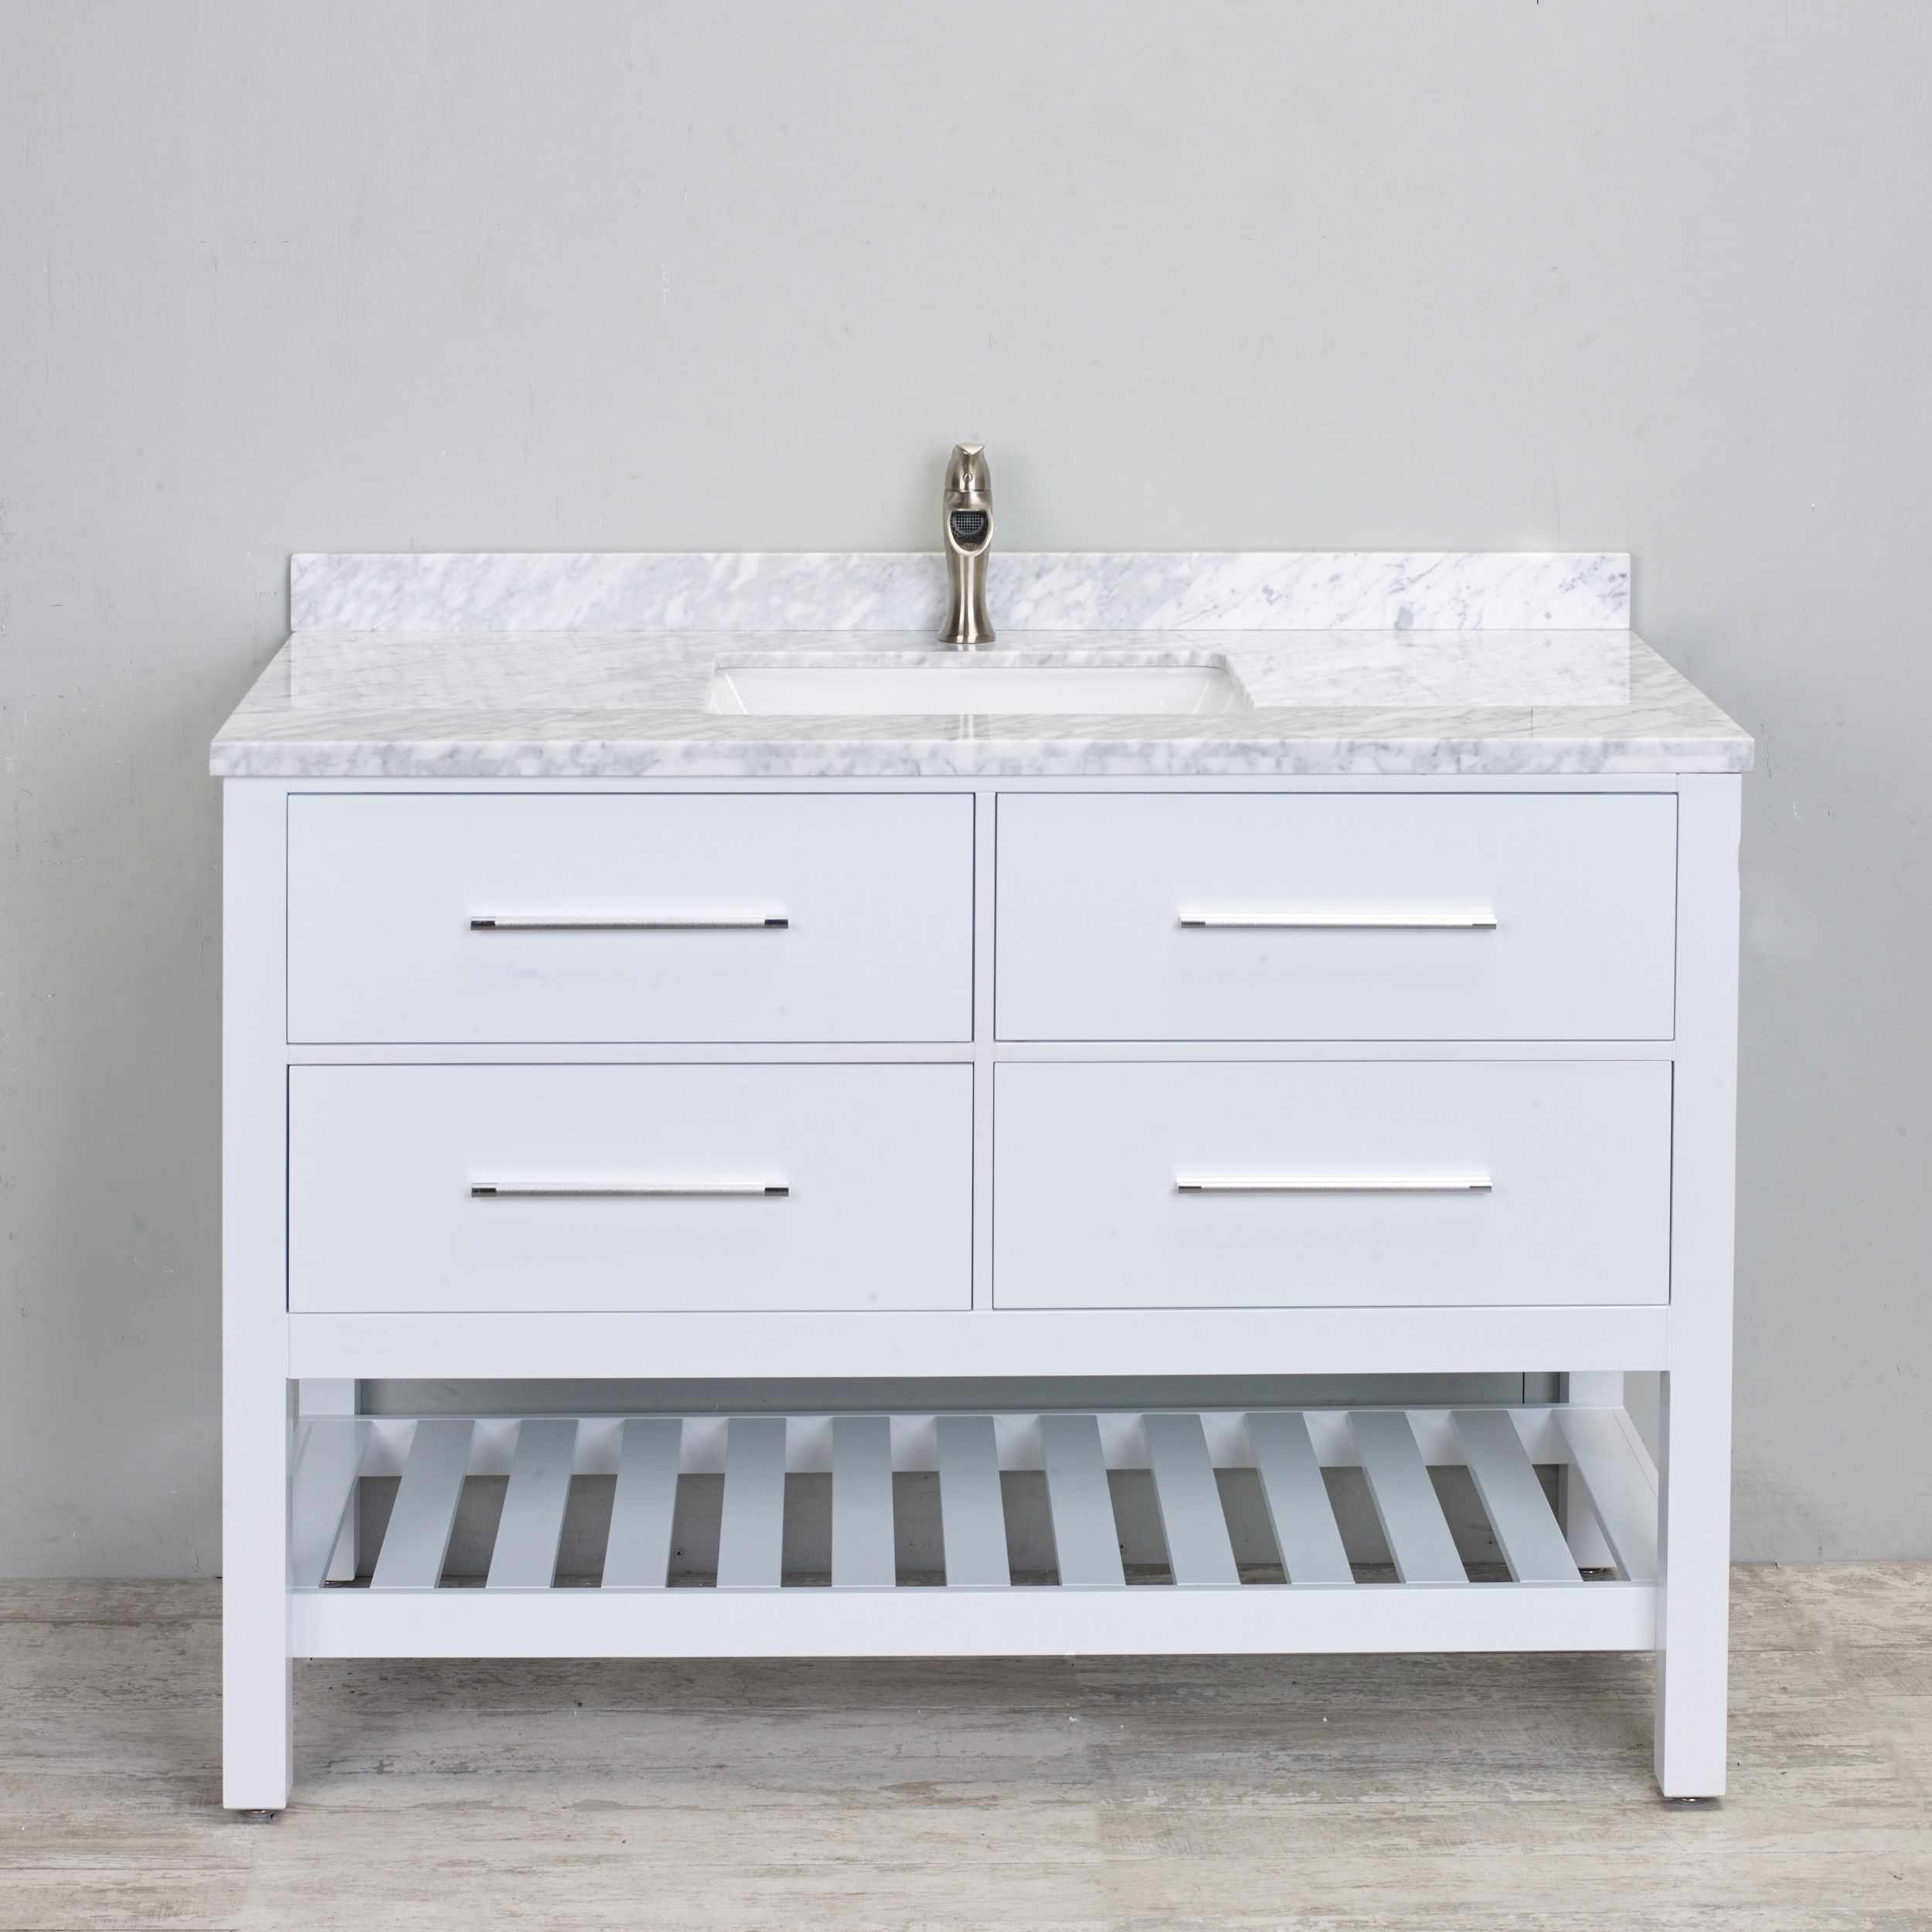 48 inch white bathroom vanity. Eviva 48-inch White Bathroom Vanity With Carrera Marble Counter-top 48 Inch S